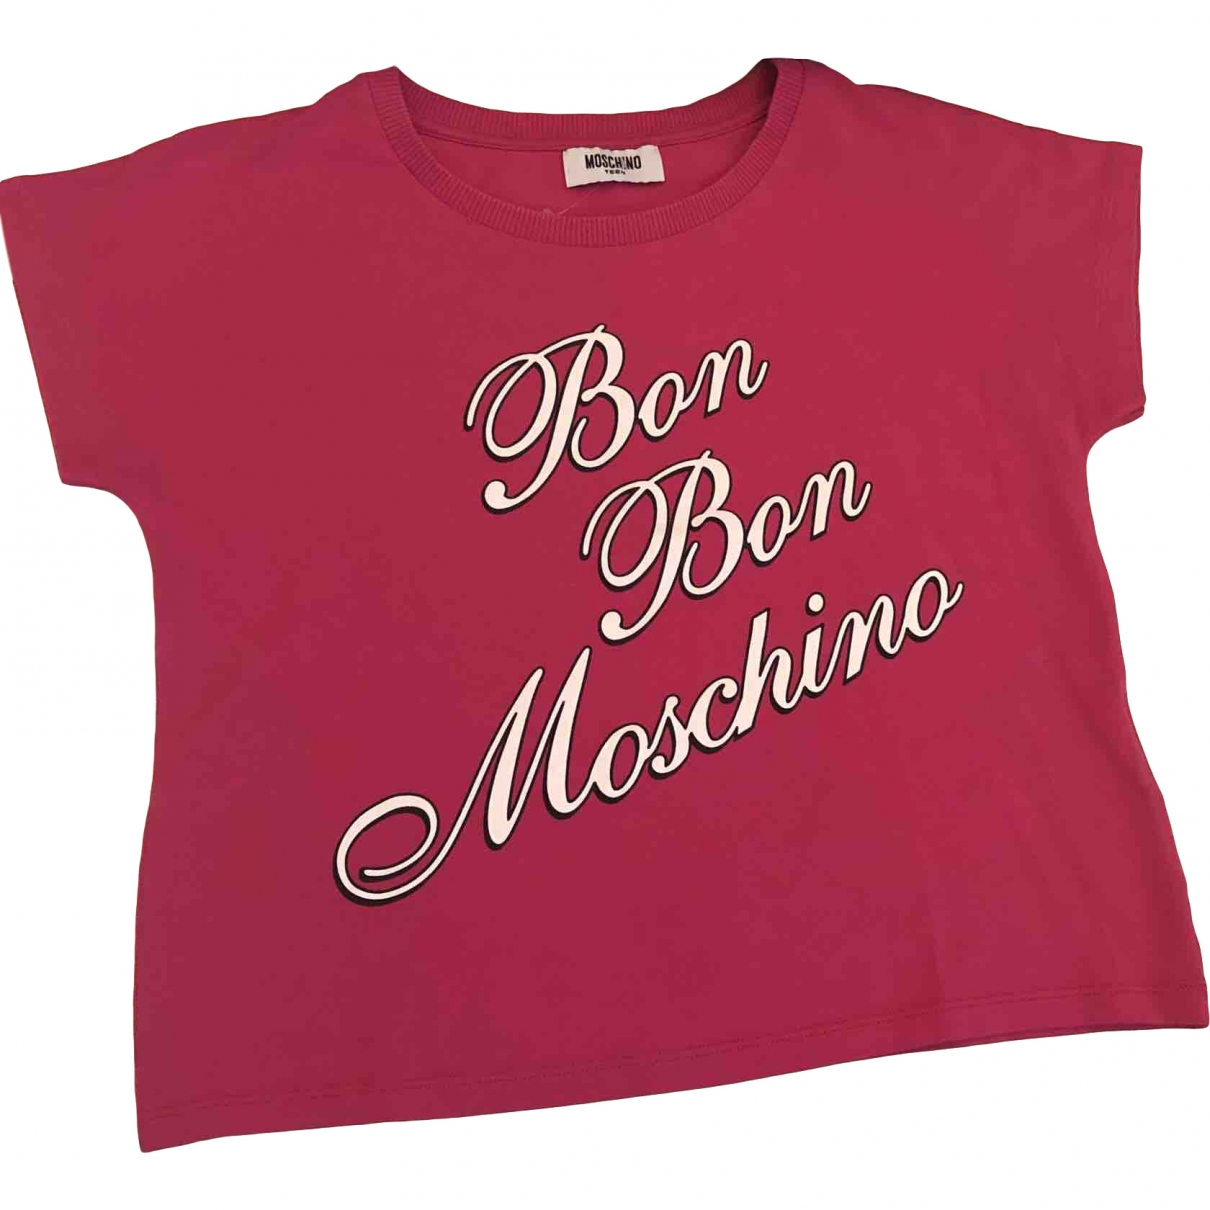 Moschino \N Pink Cotton  top for Kids 12 years - XS FR